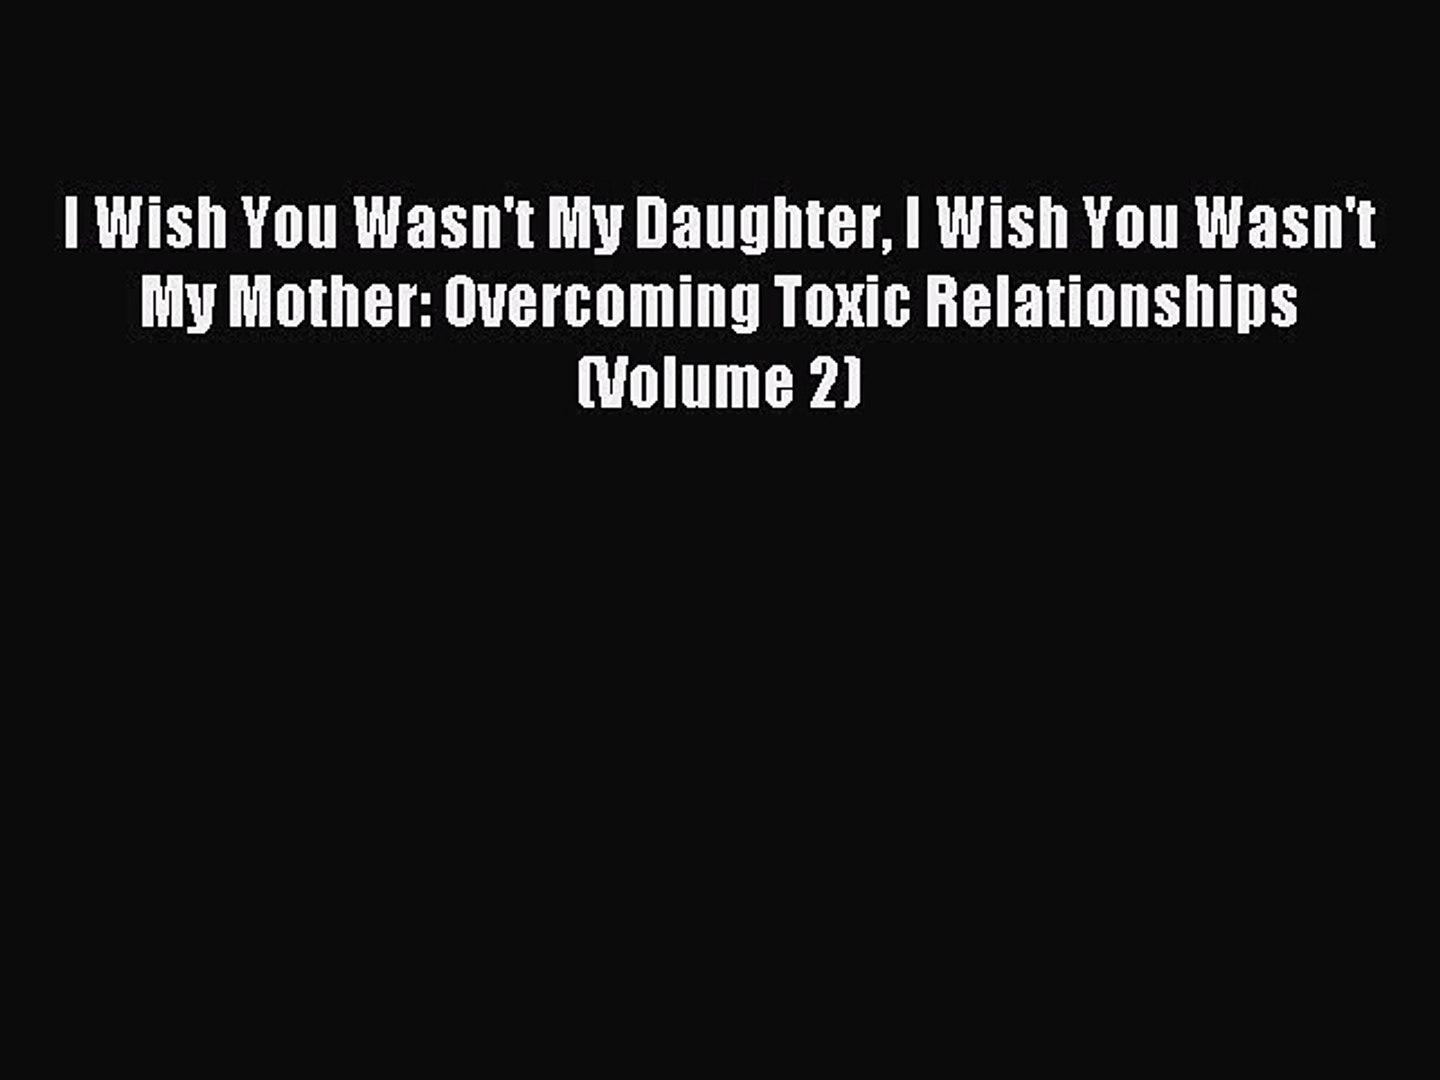 Download I Wish You Wasn't My Daughter I Wish You Wasn't My Mother:  Overcoming Toxic Relationships